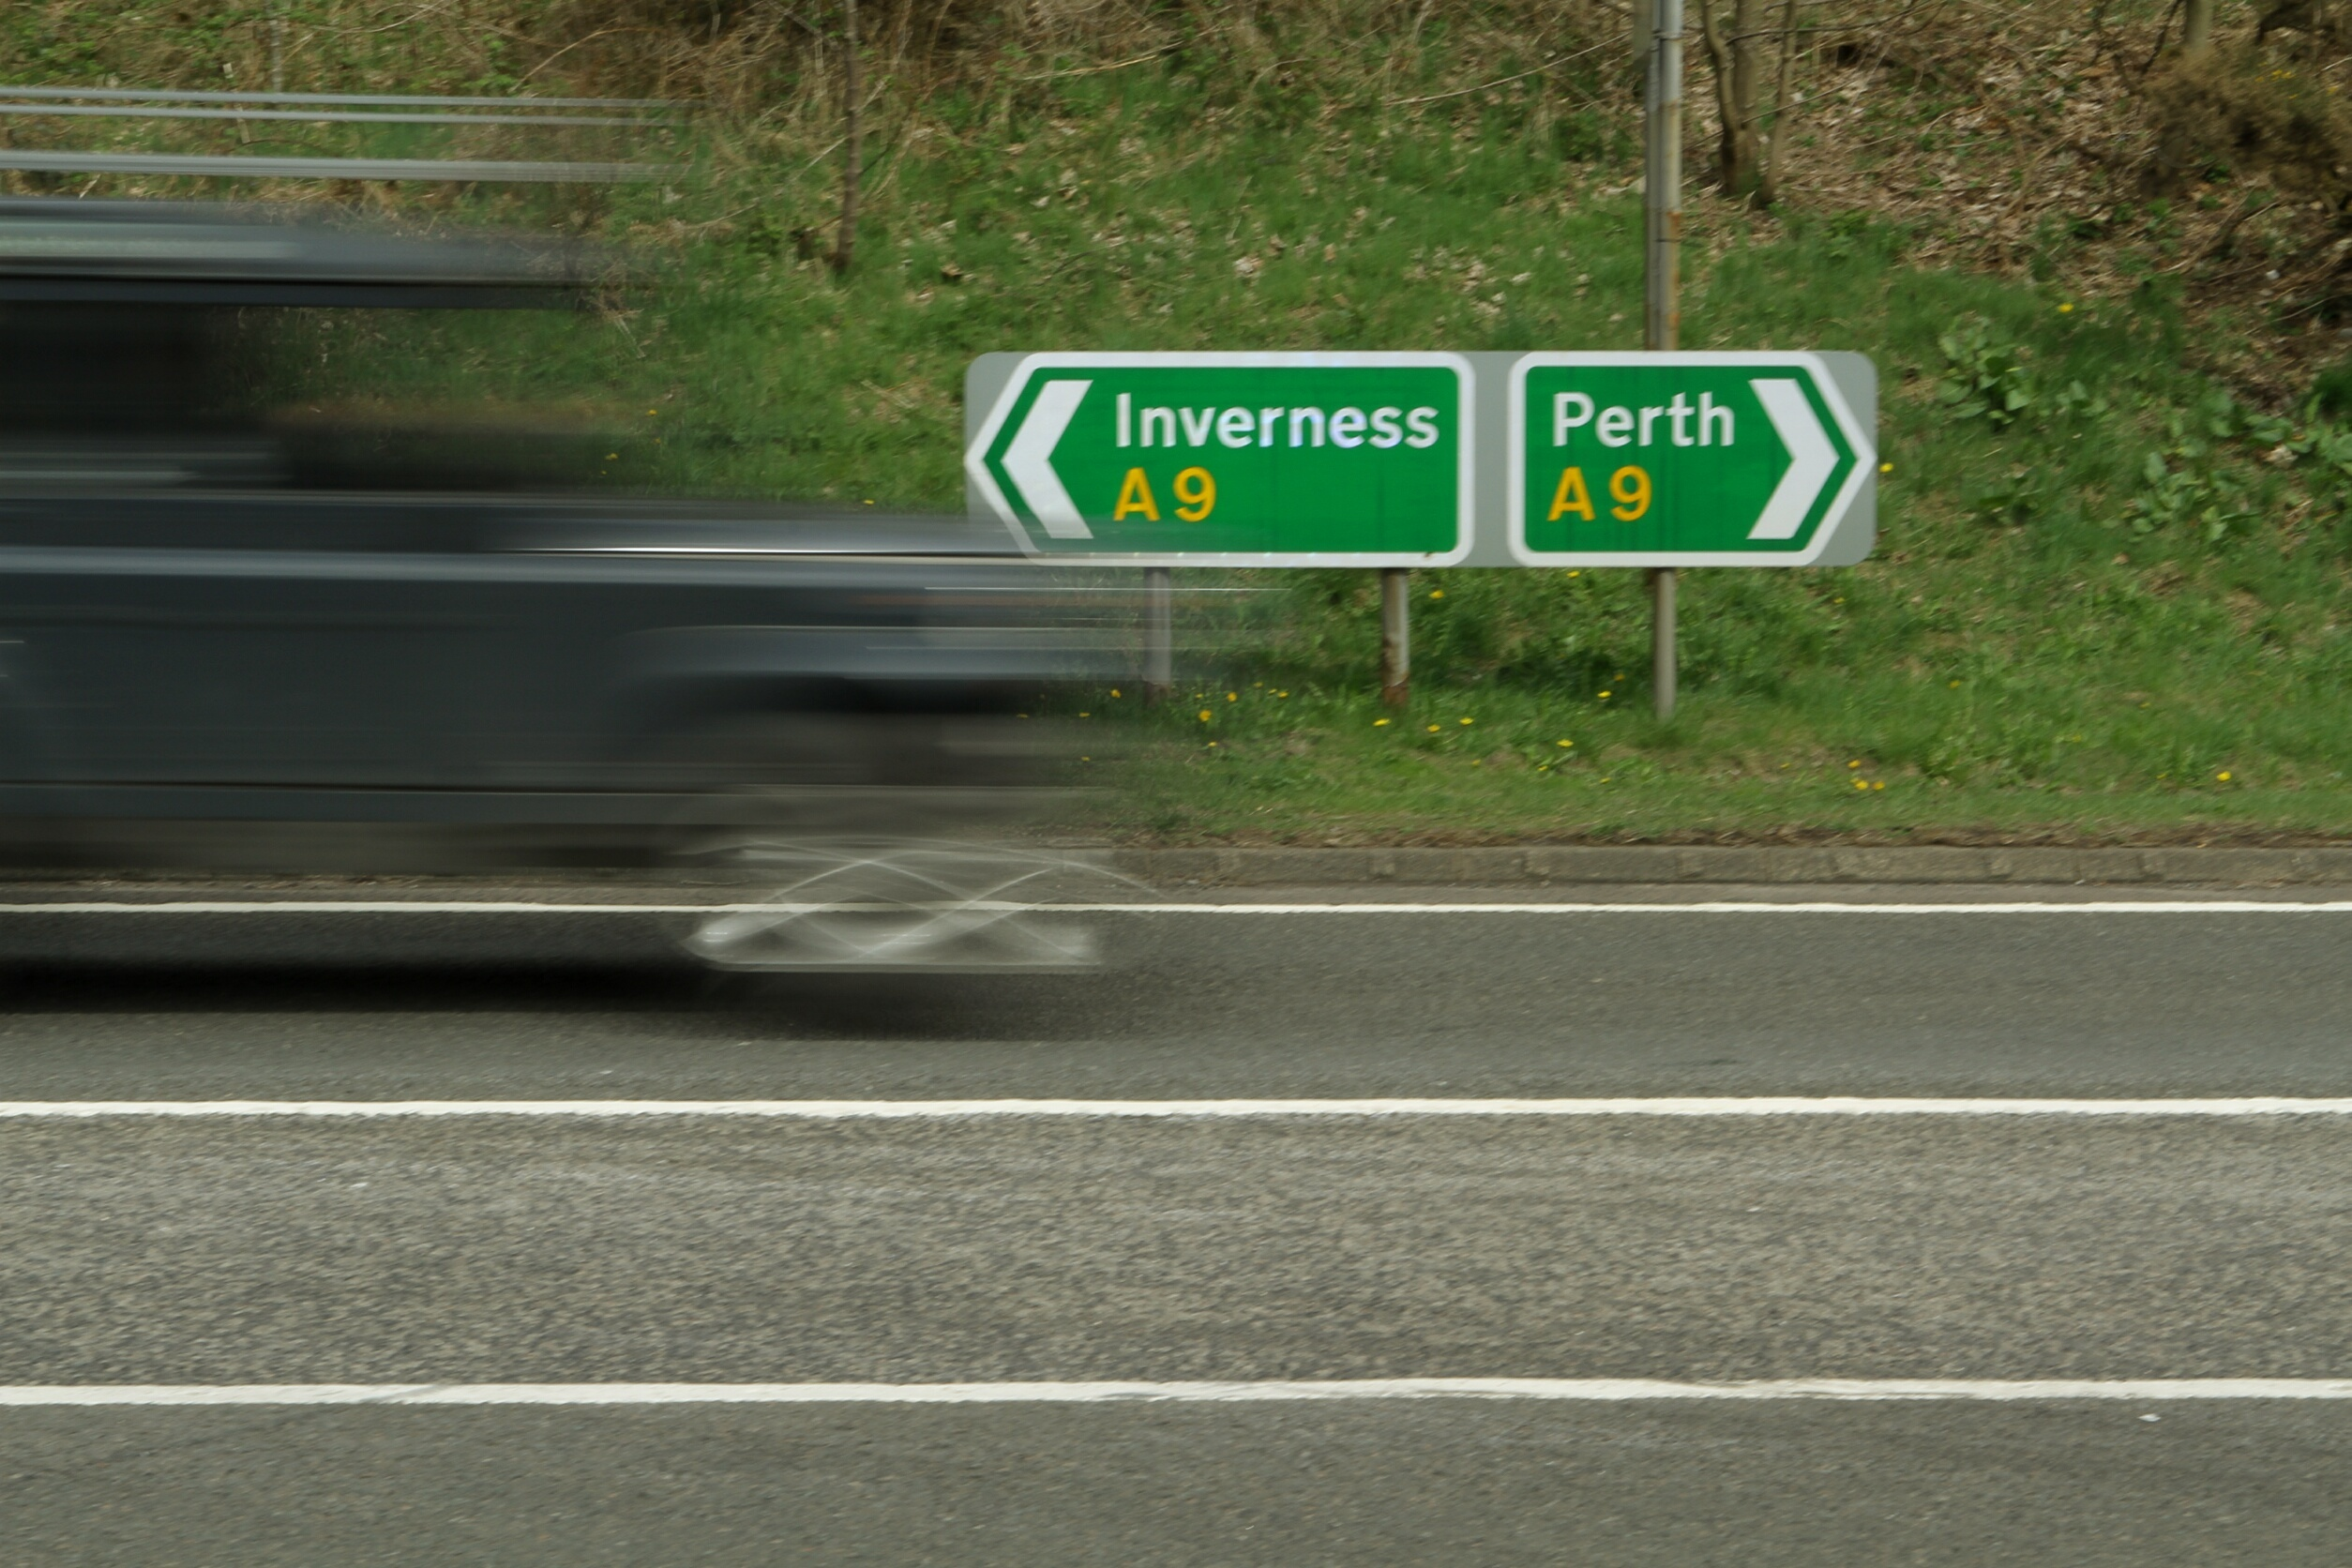 The dualling of the A9 between Perth and Inverness is a major engineering project.